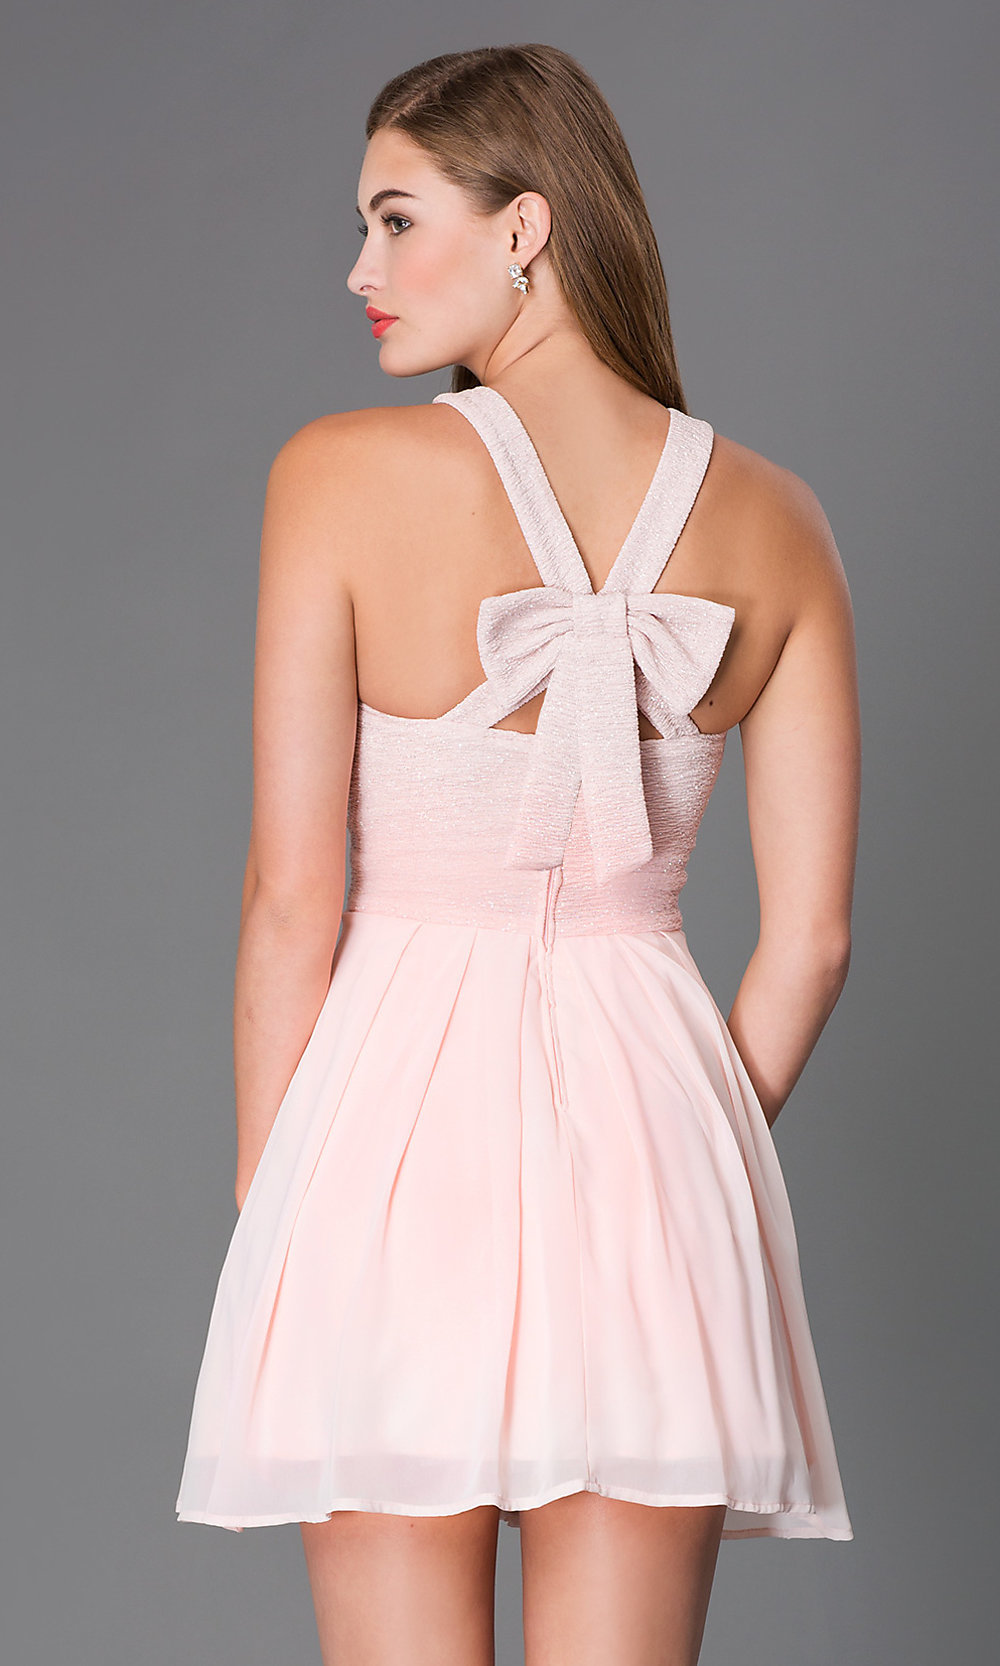 Short Sleeveless Fit And Flare Dress Promgirl